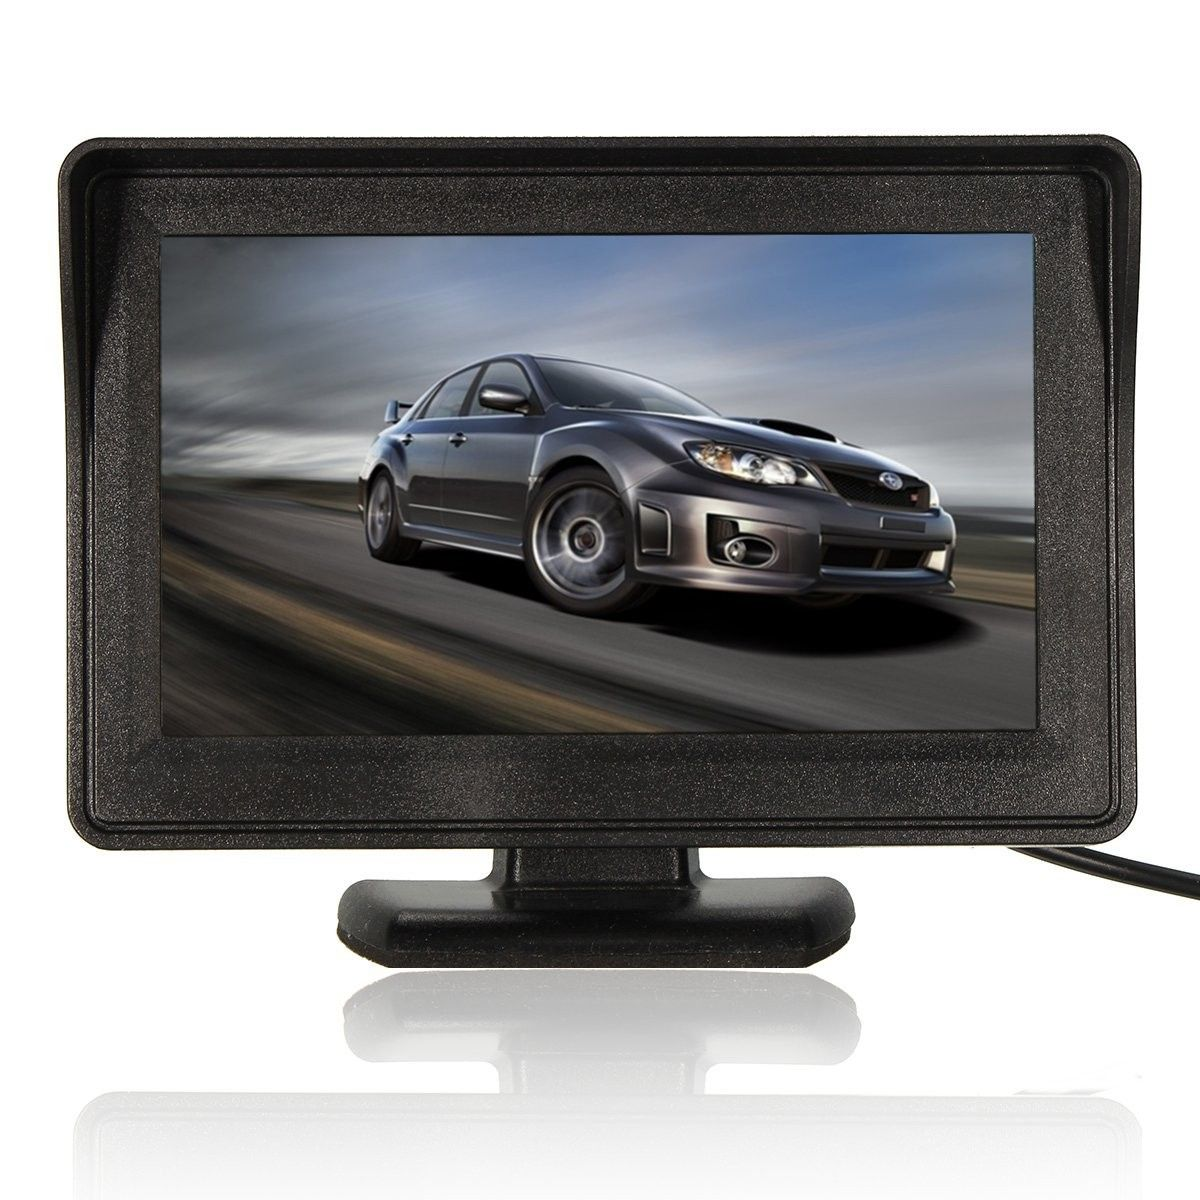 4 3 Inch Car Back Up Camera Car Rear View Monitor Lcd Car Monitor Auto Parts From Automobiles Motorcycles On Banggood Com Car Navigation System Monitor Car Colors